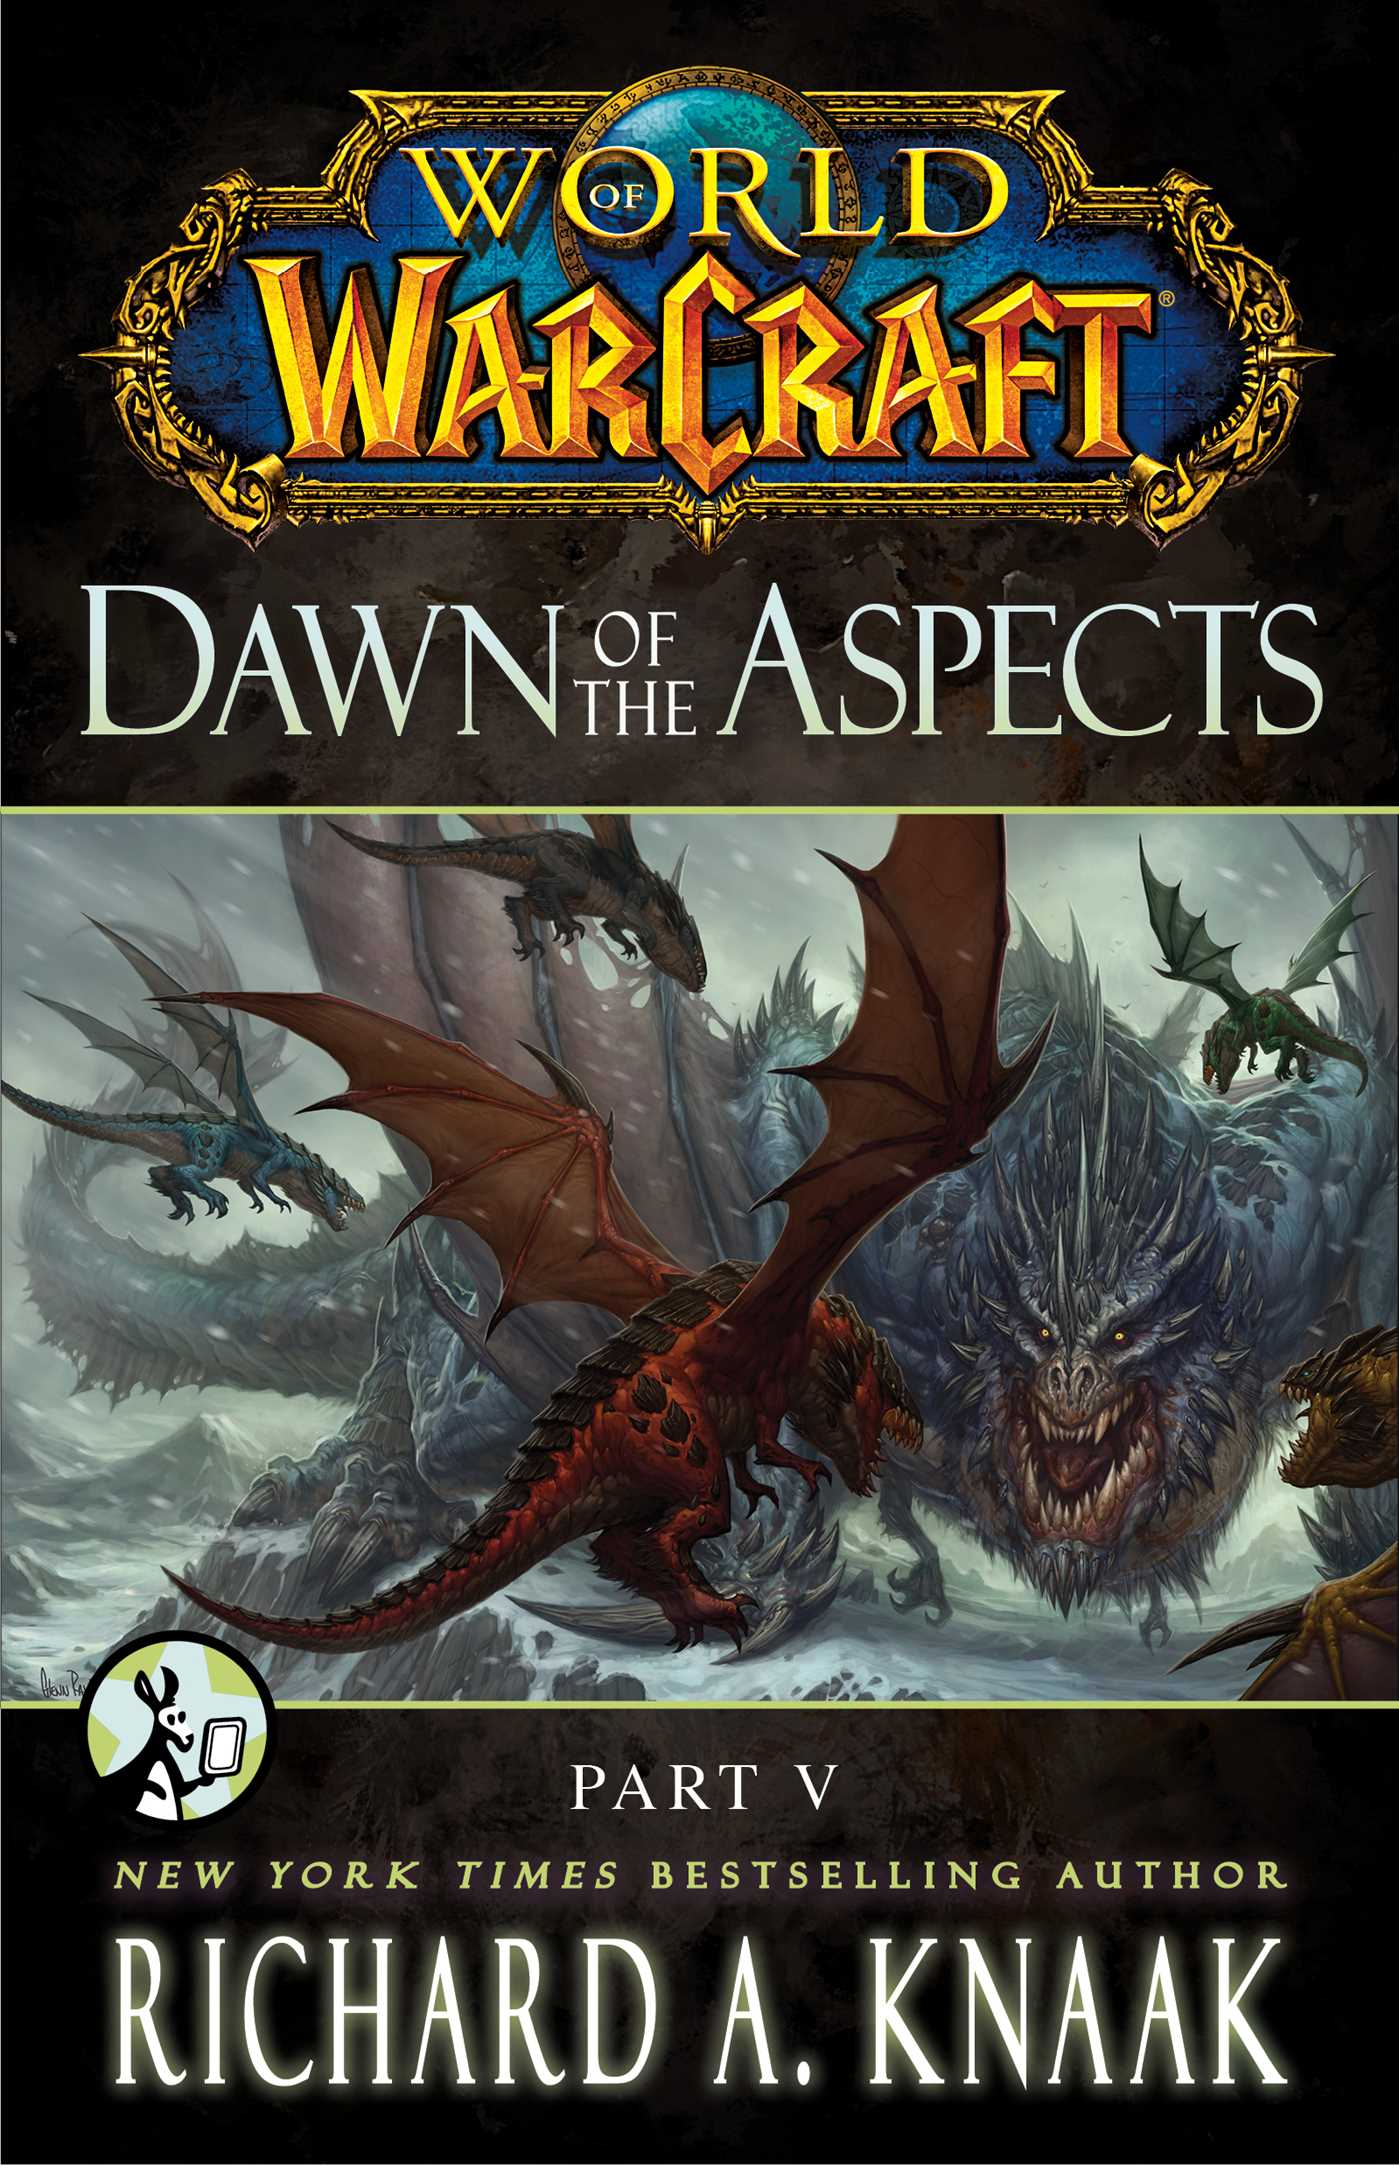 World-of-warcraft-dawn-of-the-aspects-part-v-9781476708645_hr